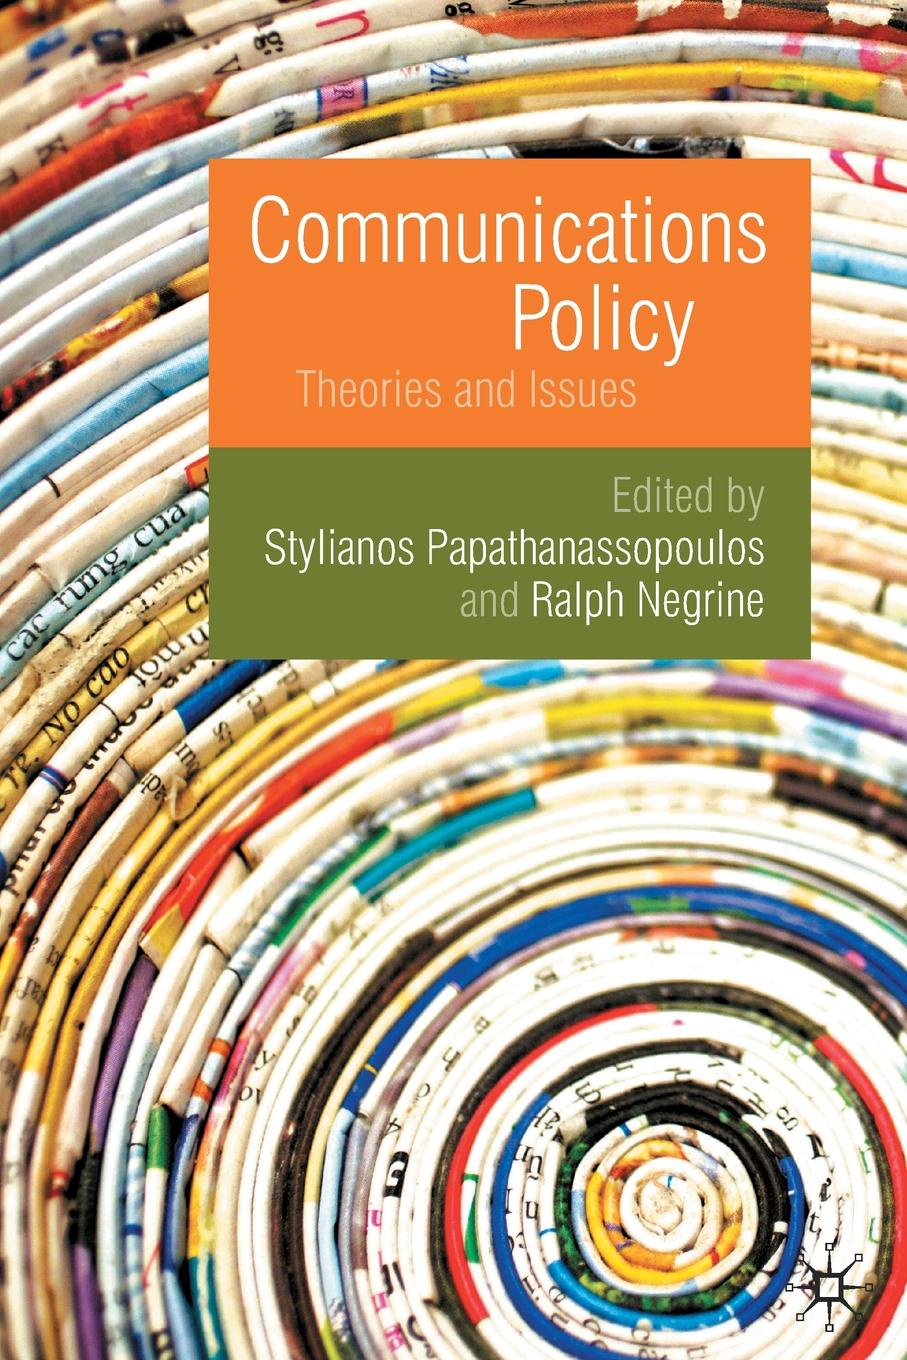 Communications Policy. Theories and Issues dhrubajyoti bhattacharya public health policy issues theories and advocacy